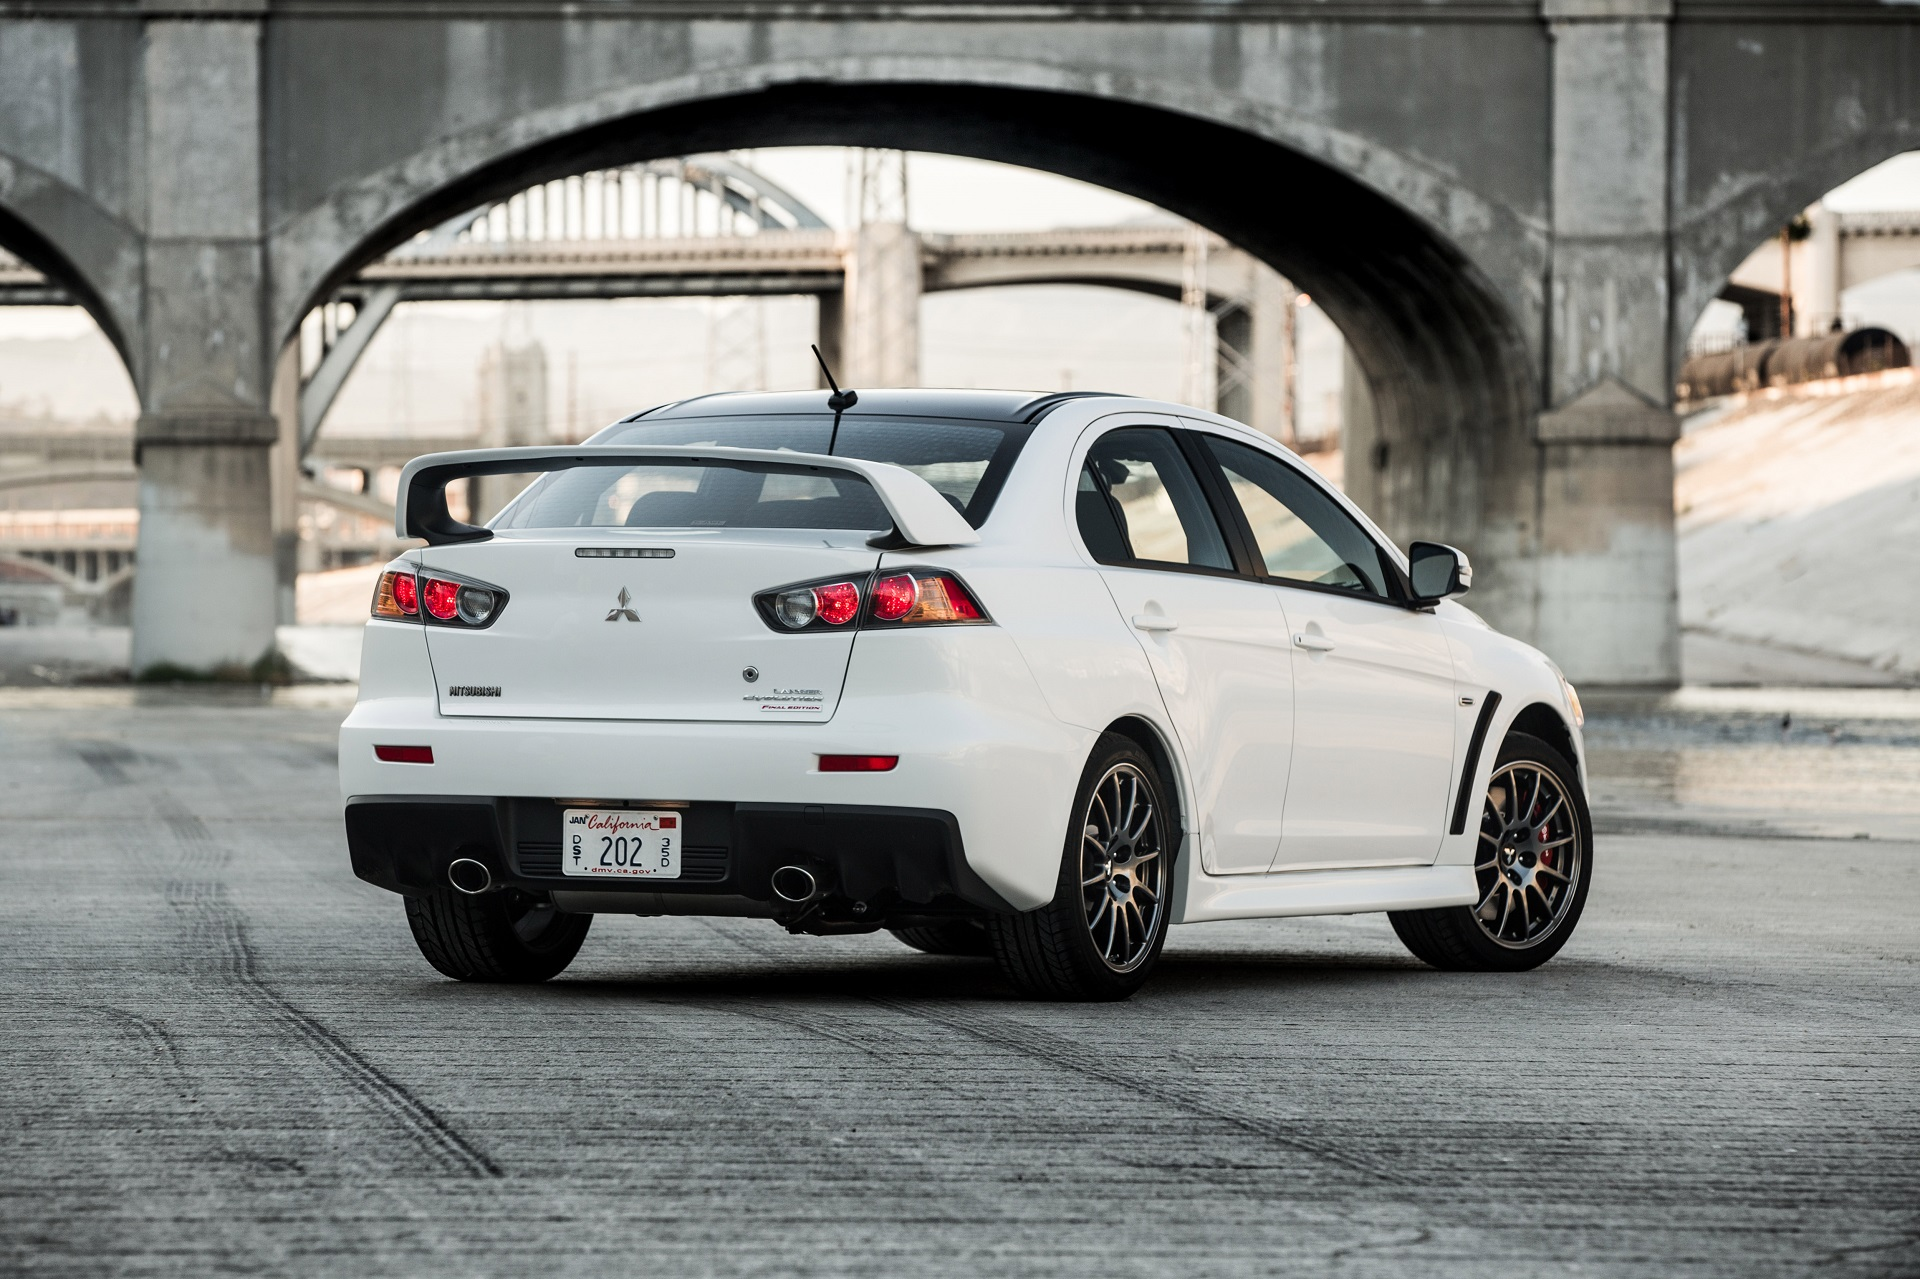 do you mourn the loss of the mitsubishi lancer evolution?